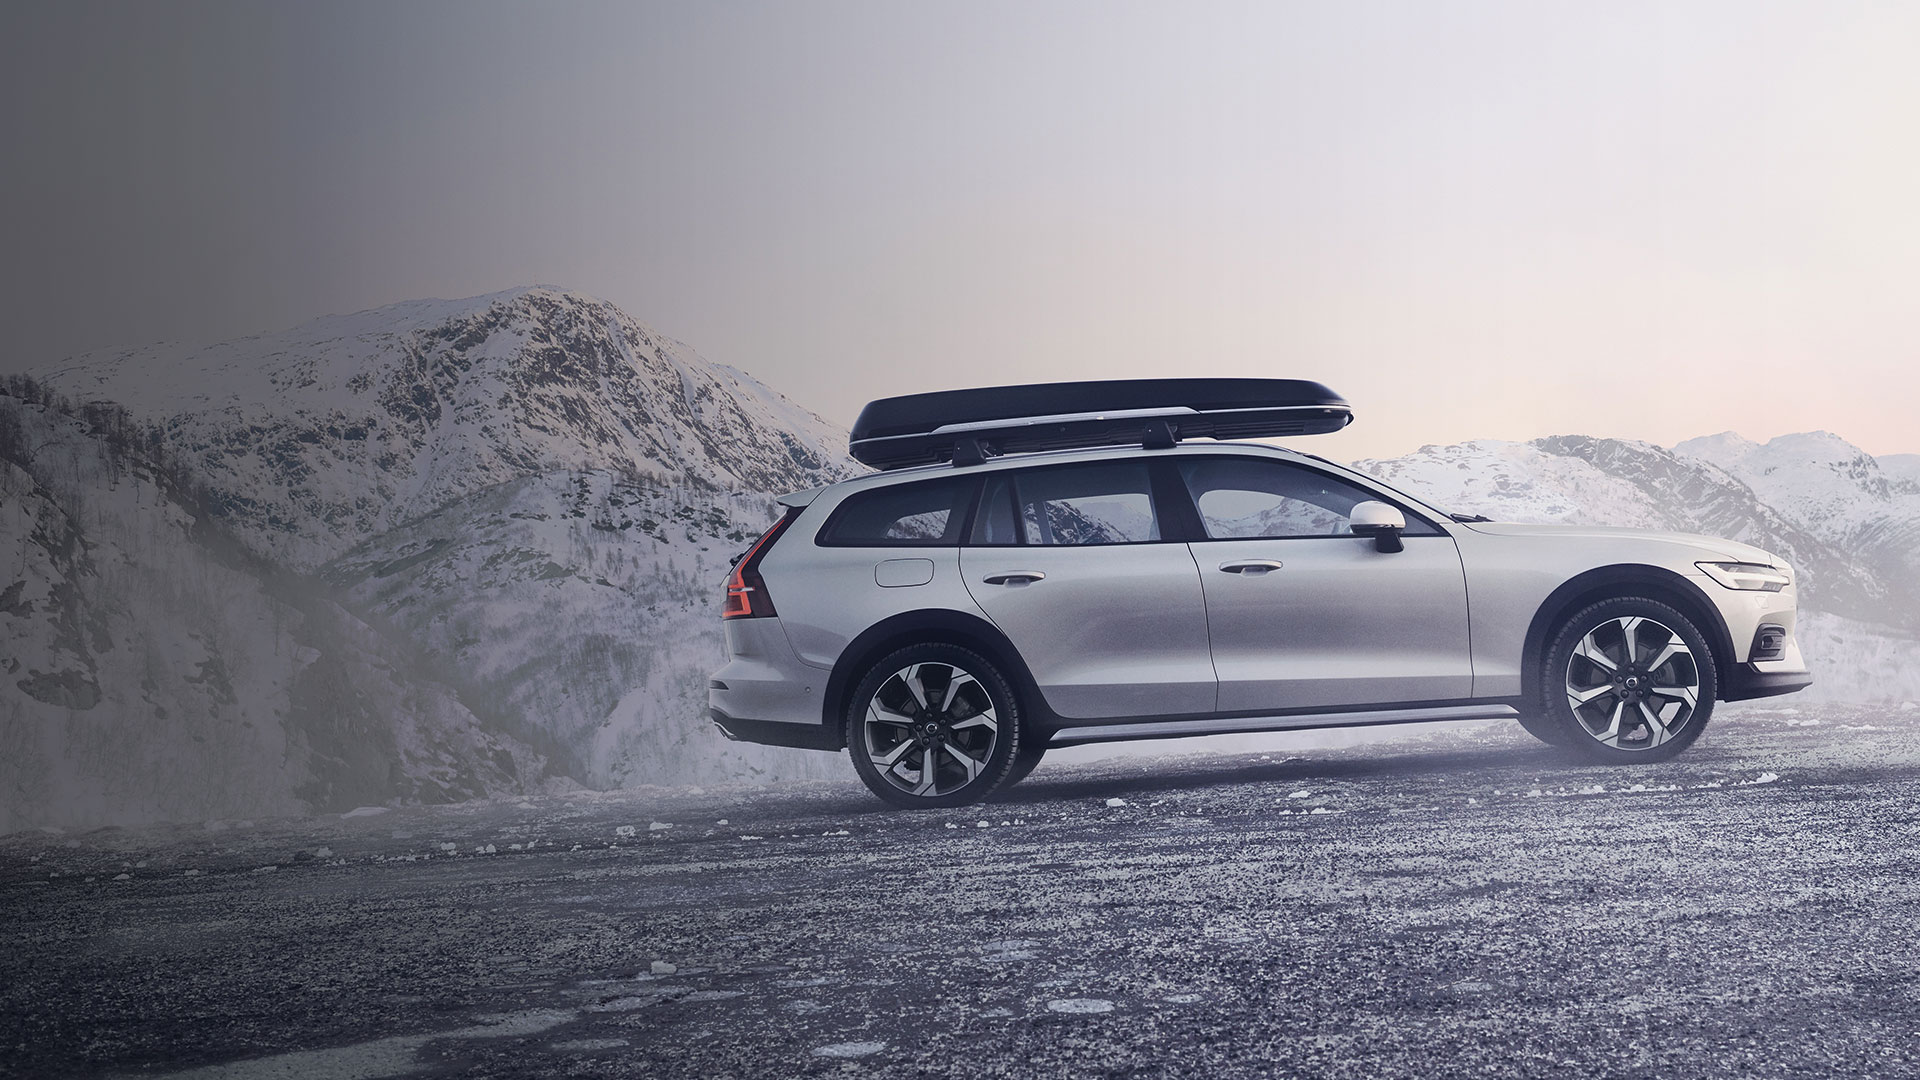 volvo-vinter-2019-homepage-banner-dark